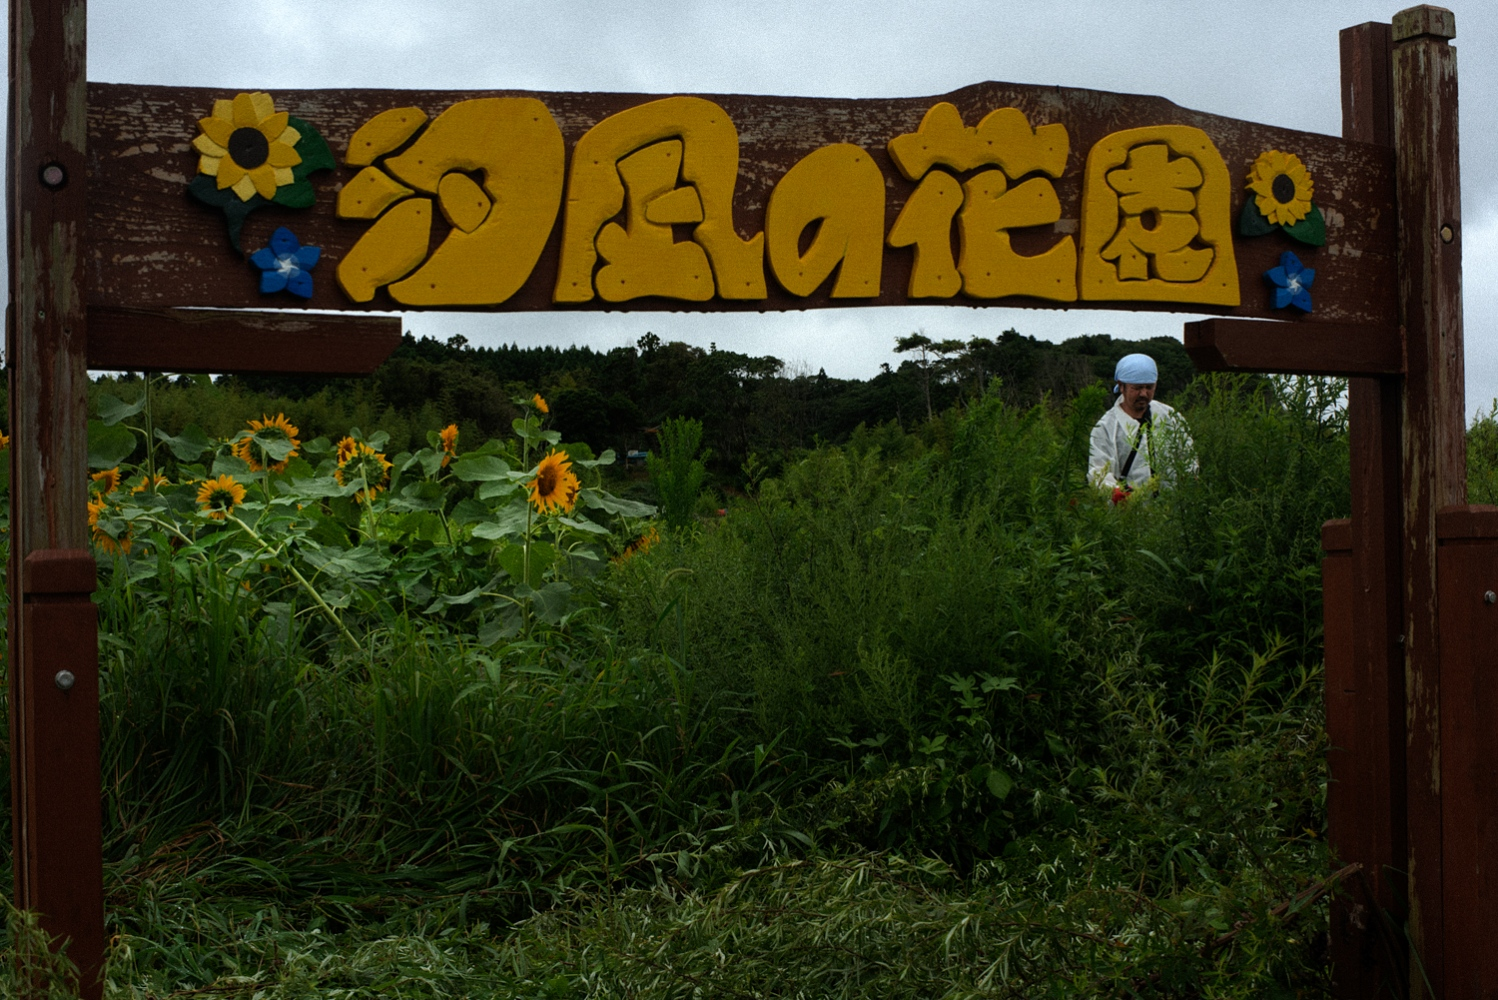 A flower garden named after Norio Kimura's daughter was created by Norio at his former home inside the exclusion zone in Fukushima.